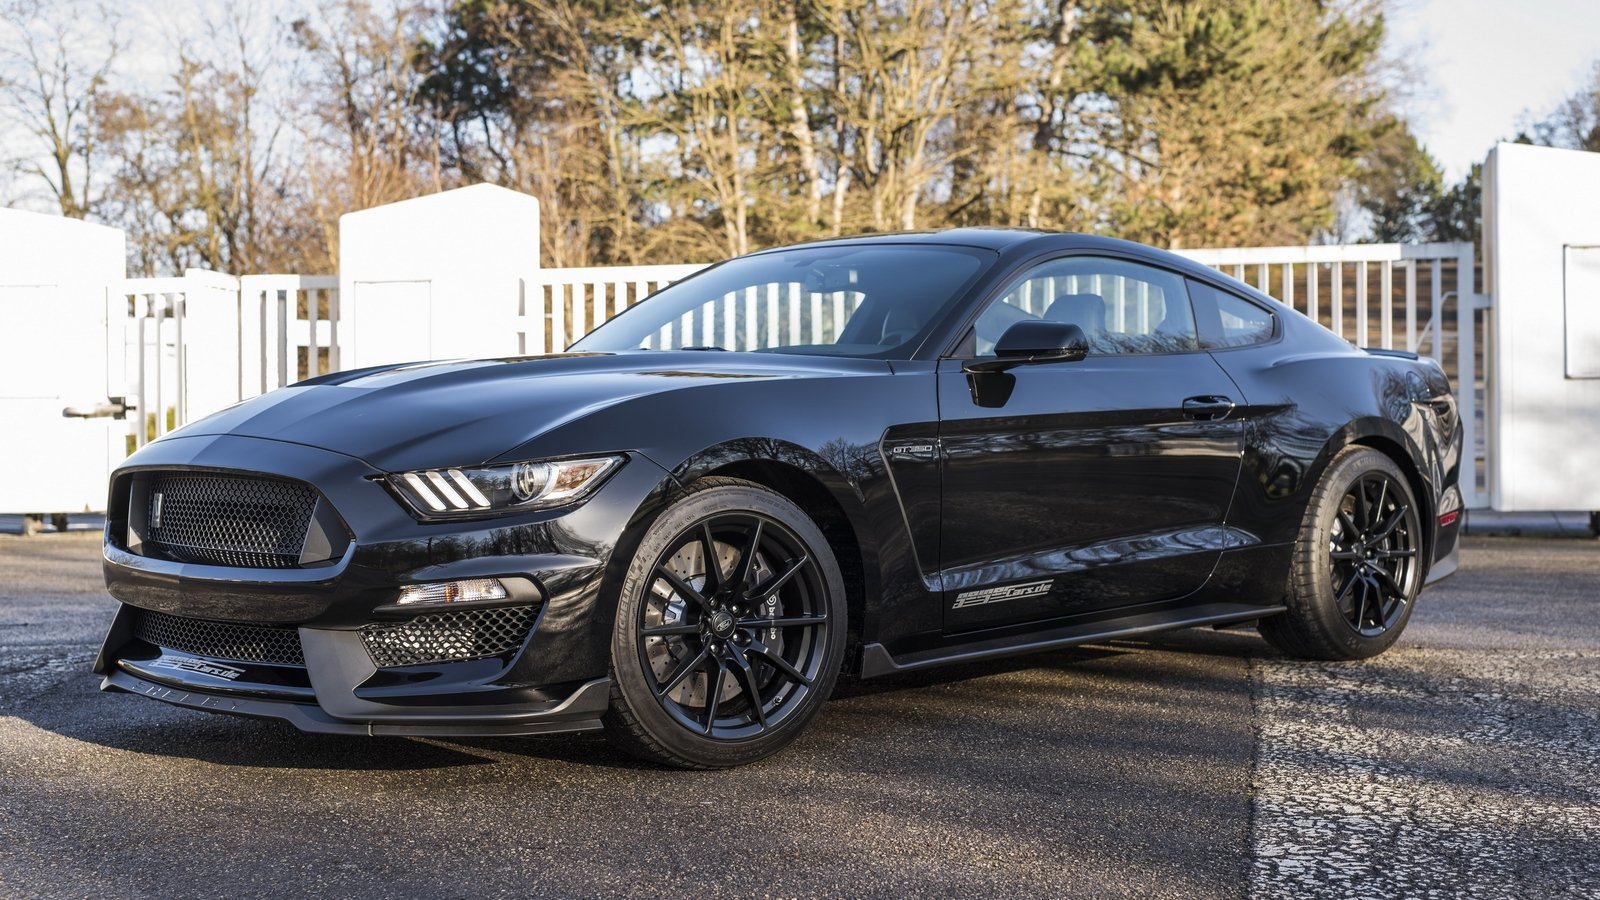 2016 geigercars to sell 2016 ford shelby gt350 mustang in. Black Bedroom Furniture Sets. Home Design Ideas